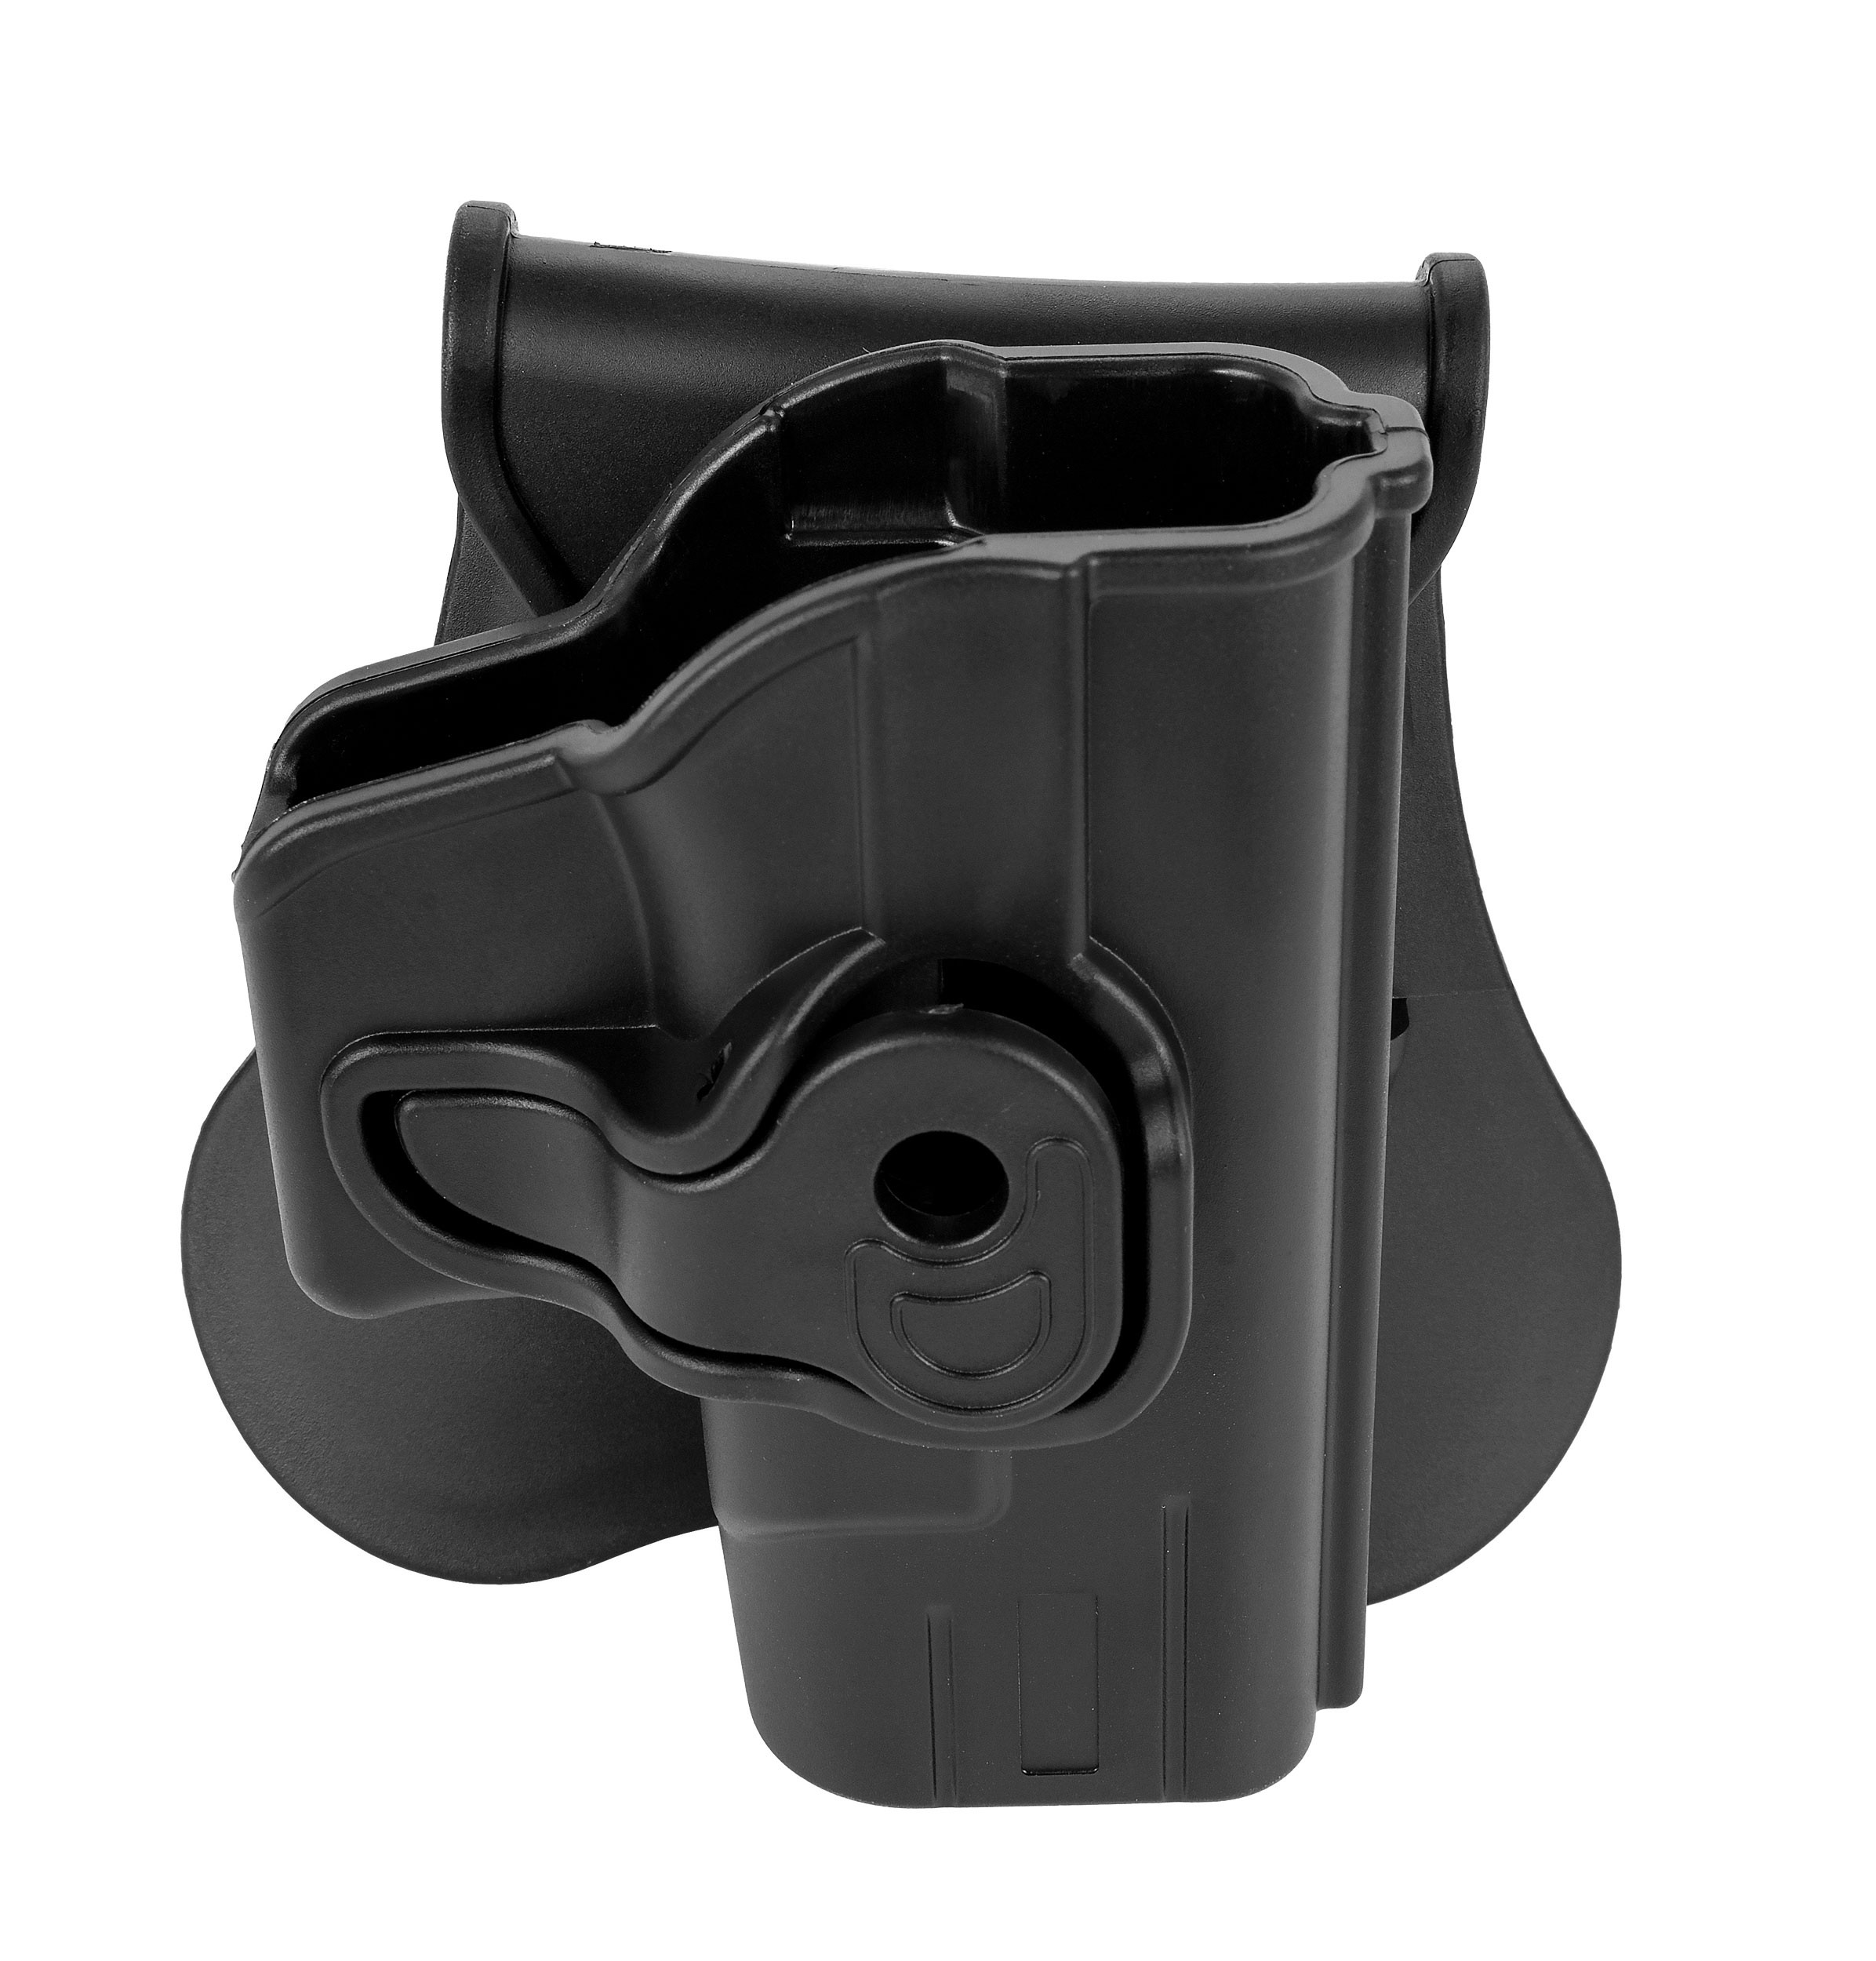 Fits Glock 43 Holster